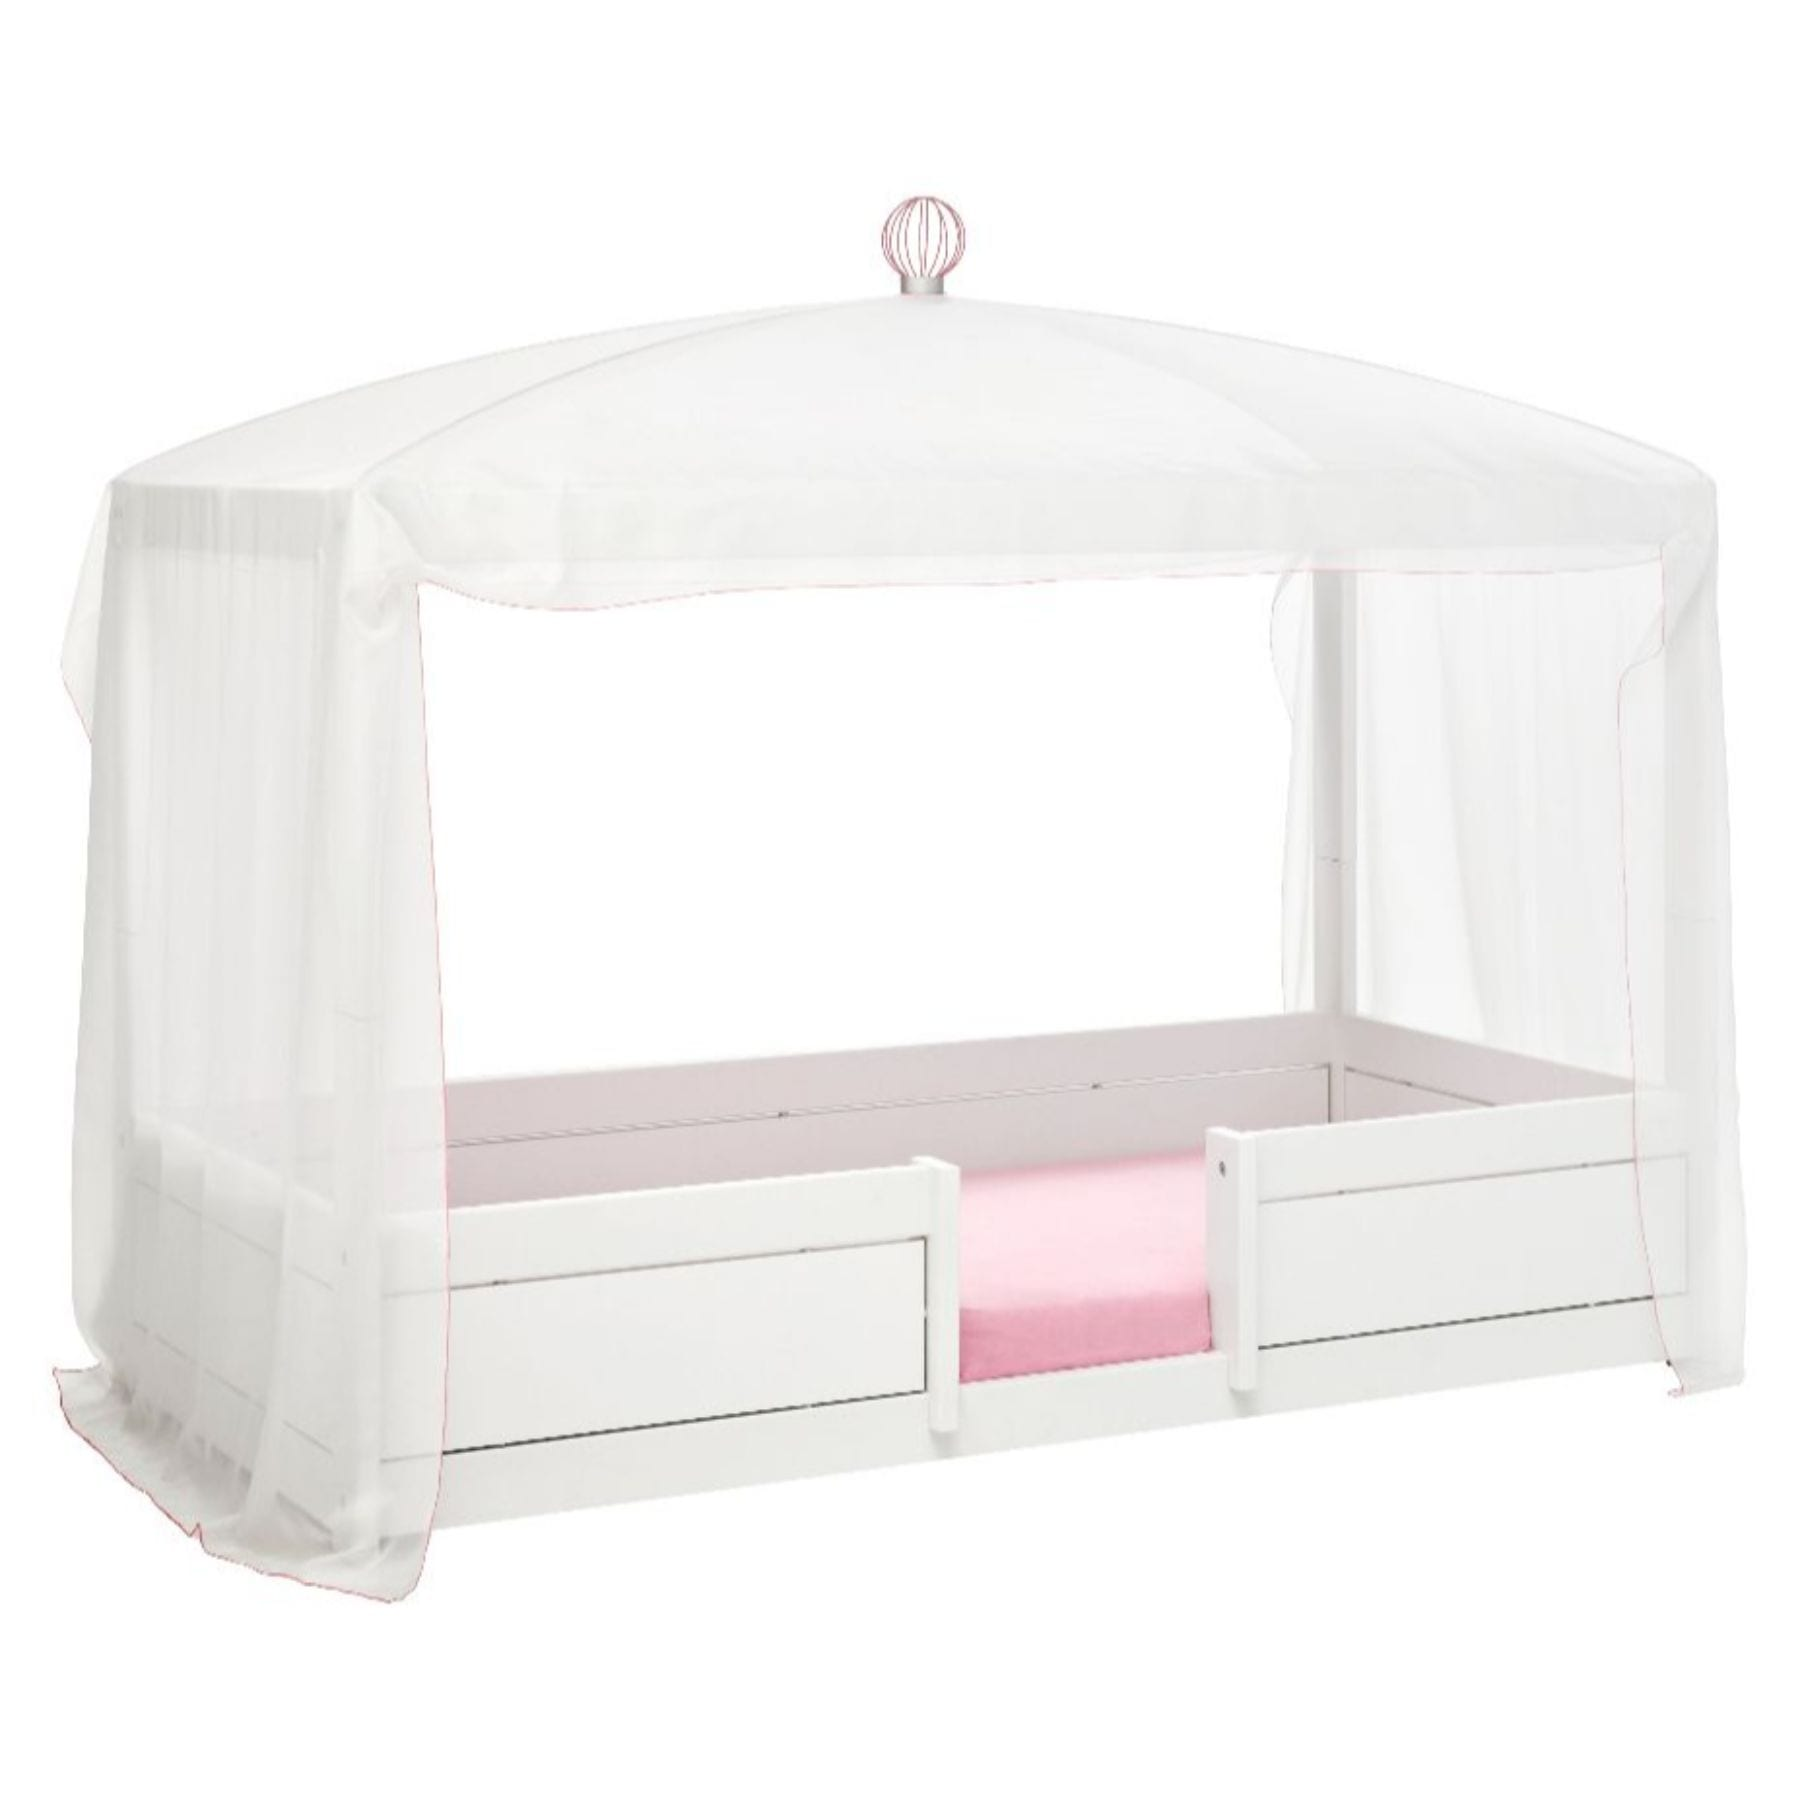 Lifetime 4 in 1 Bed - White/Pink